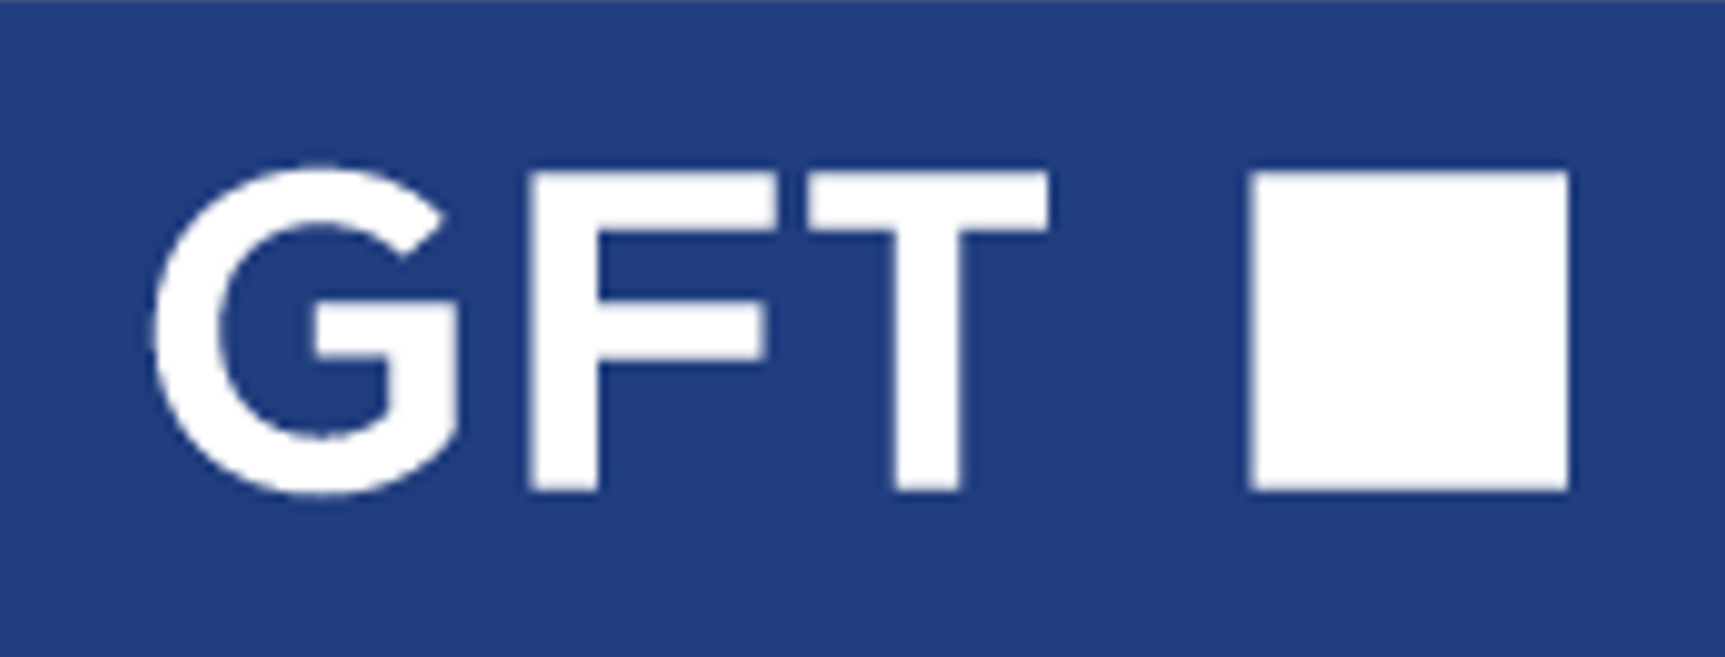 GFT Appoints Andrew Scotland as Head of Agile & Continuous Delivery Practice